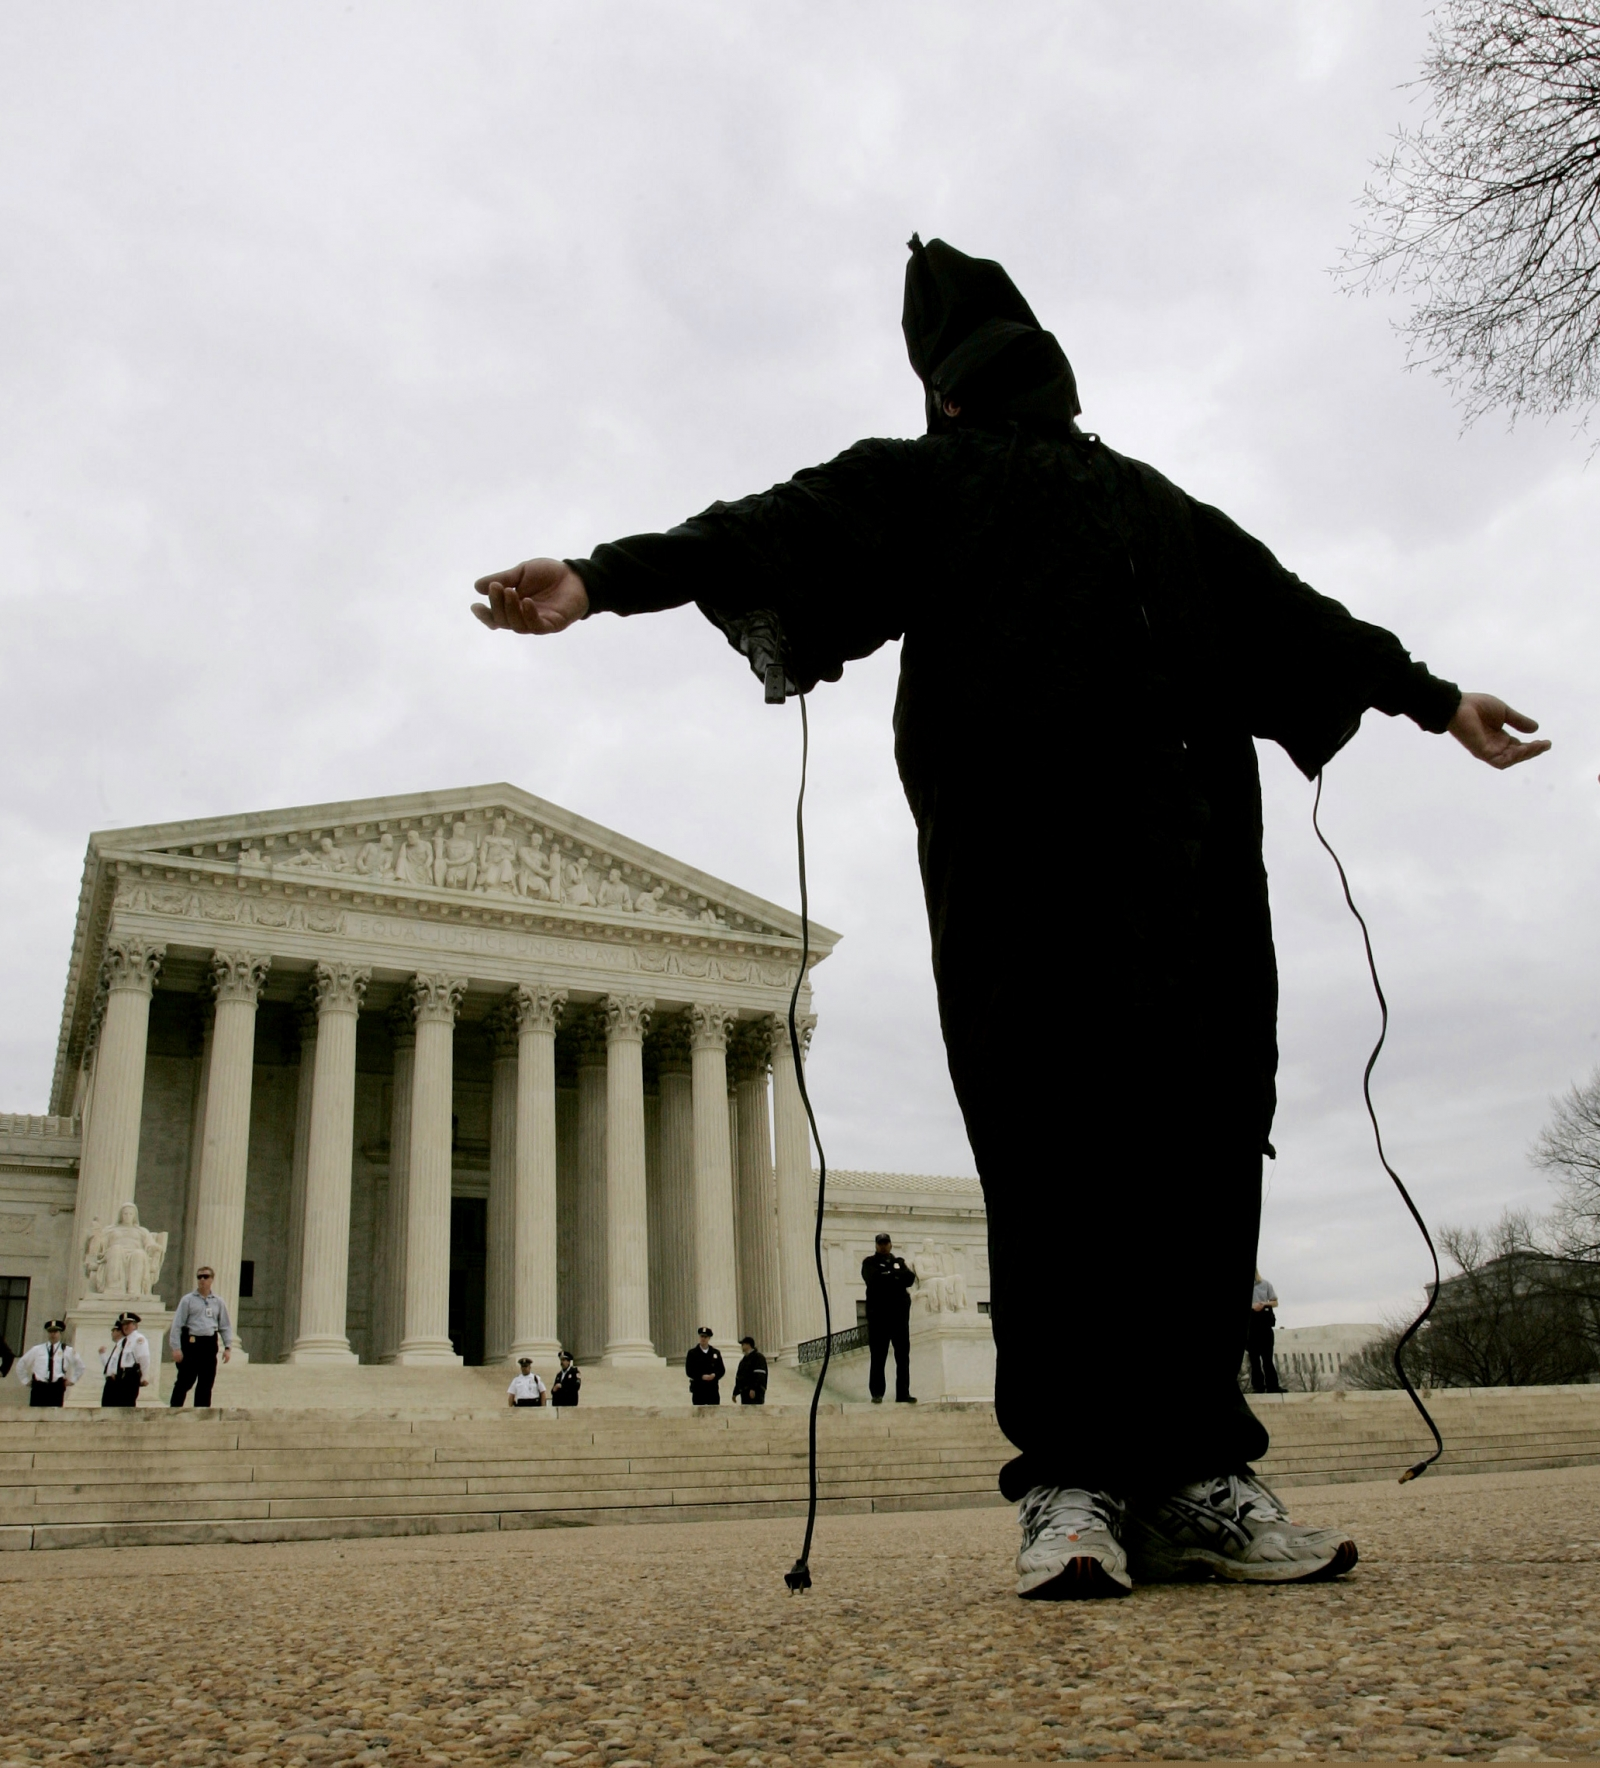 An activist recreates one of the infamous images of detainee abuse in Iraq's Abu Ghraib prison outside the US Supreme Court (Reuters)